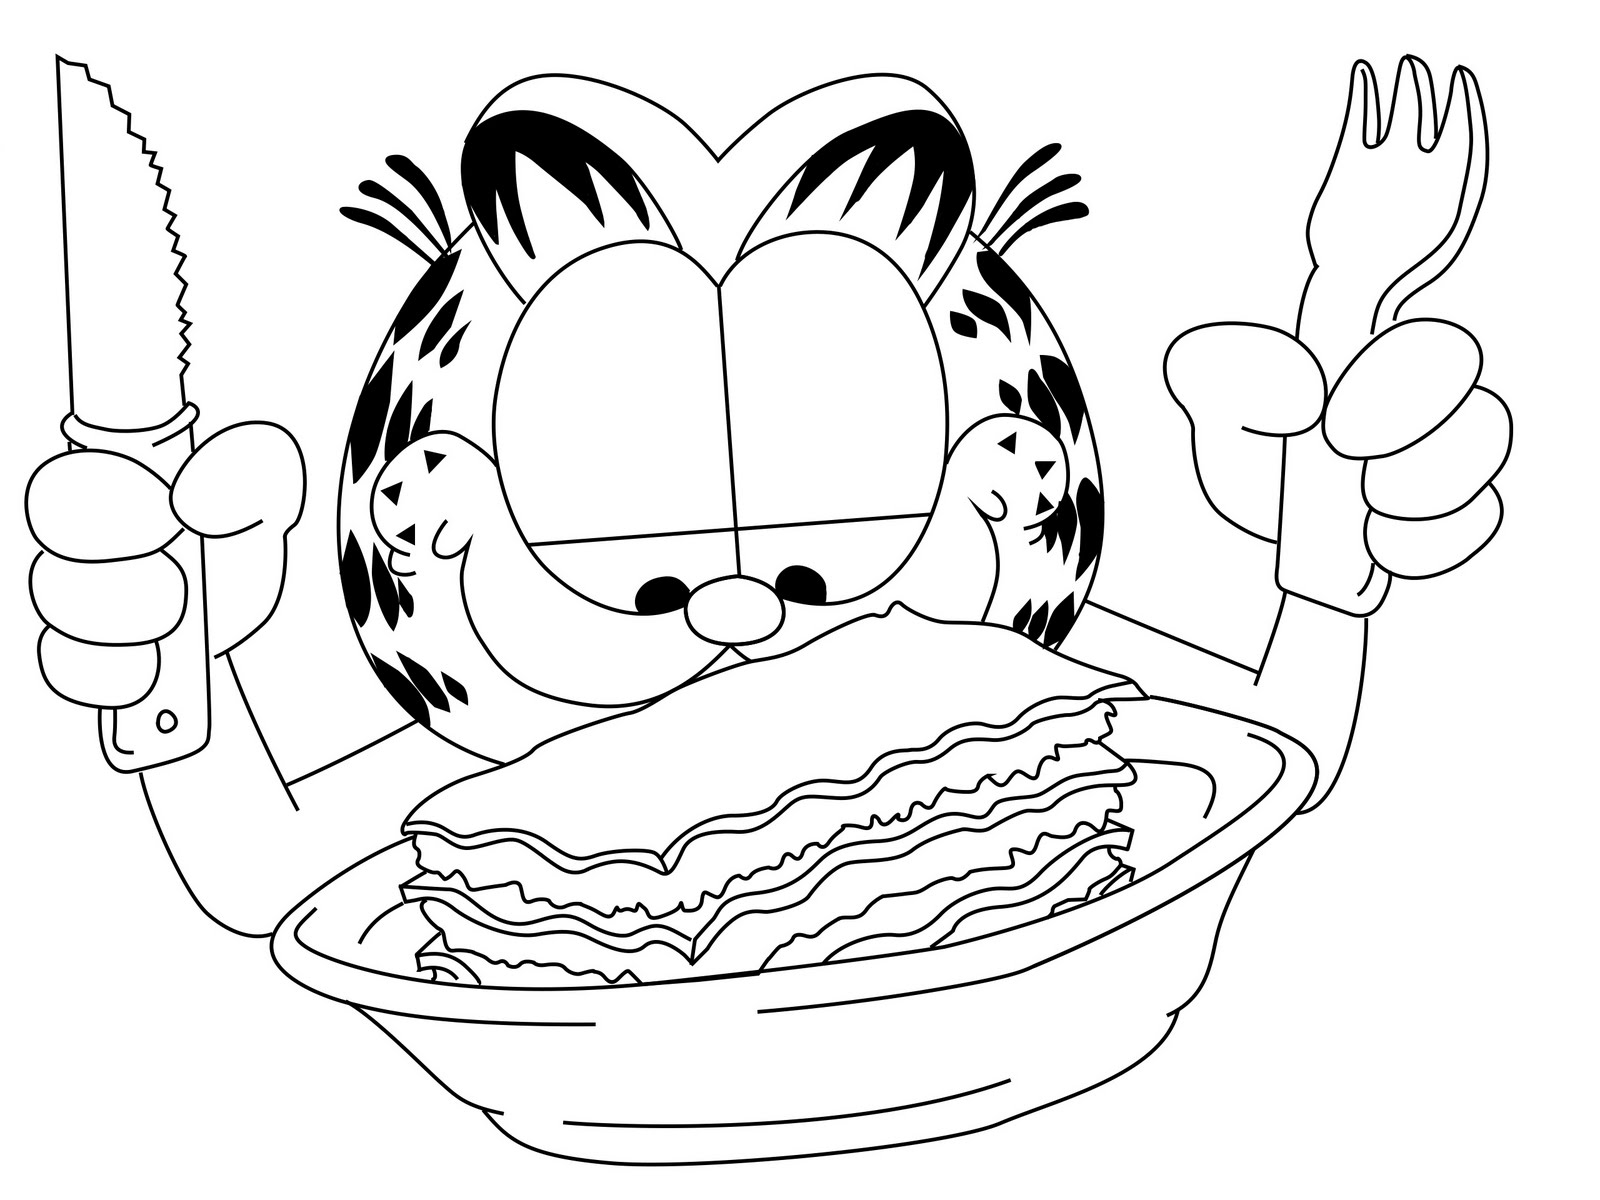 Lasagna Drawing